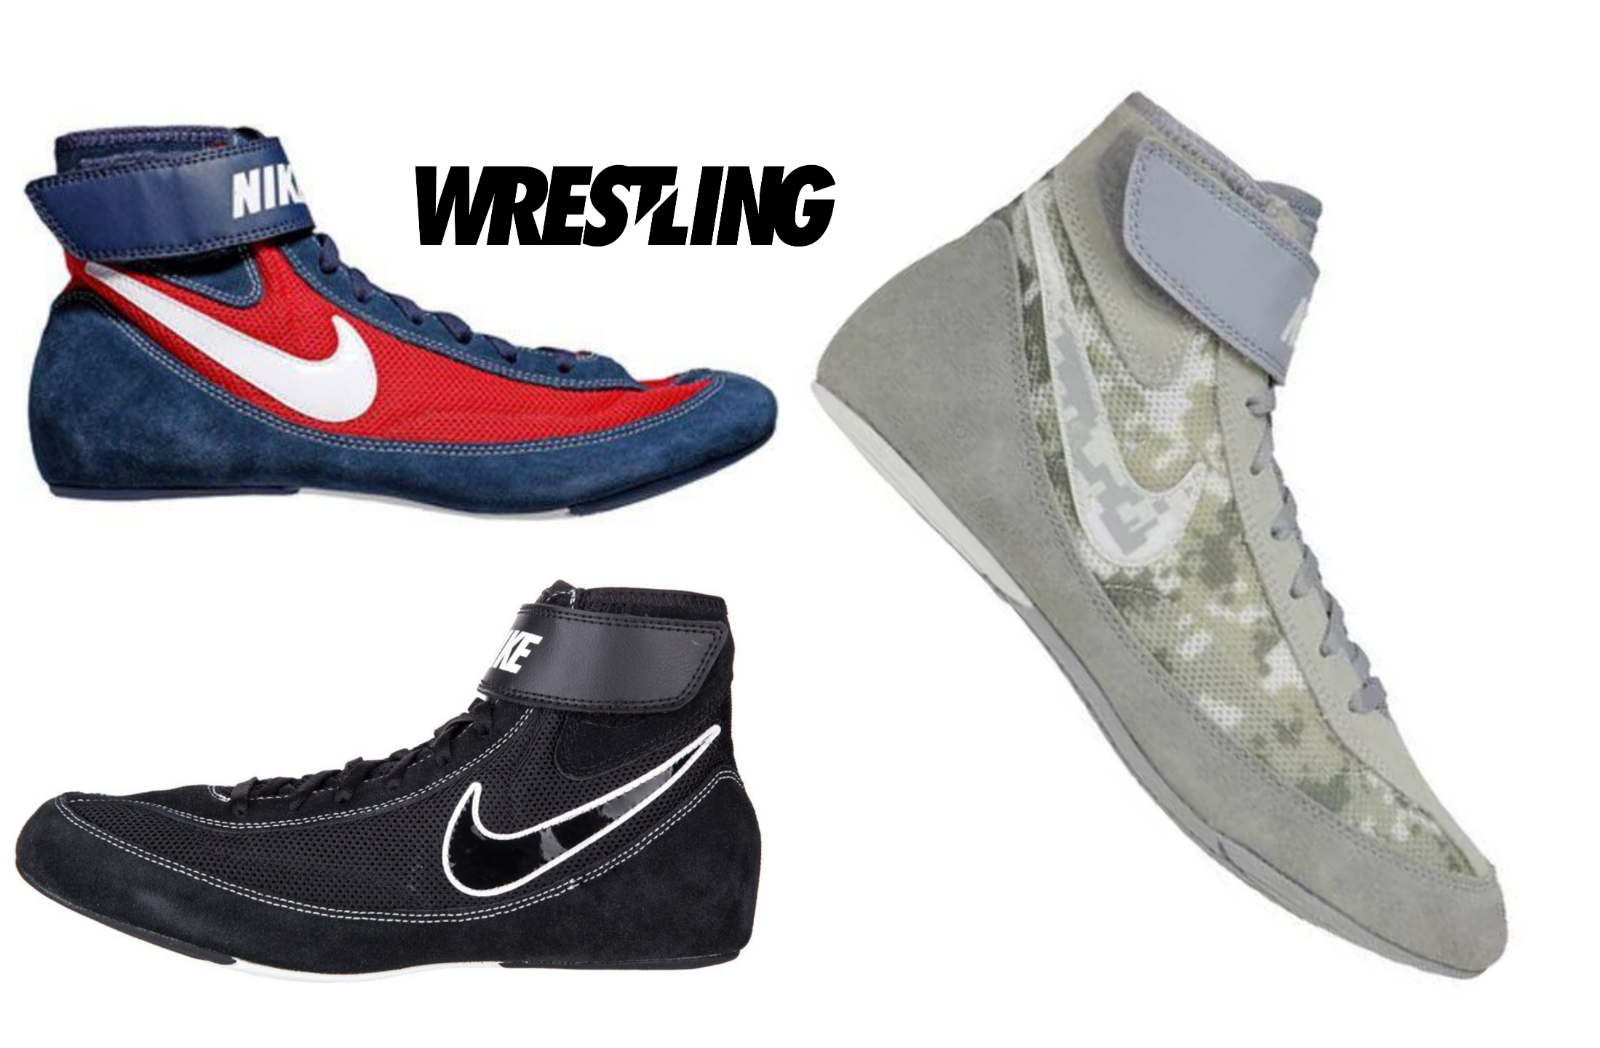 deb20ff463496 Details about Nike Youth Speedsweep VII KIDS Wrestling Shoes Boxing Boots  Combat Sport Shoes